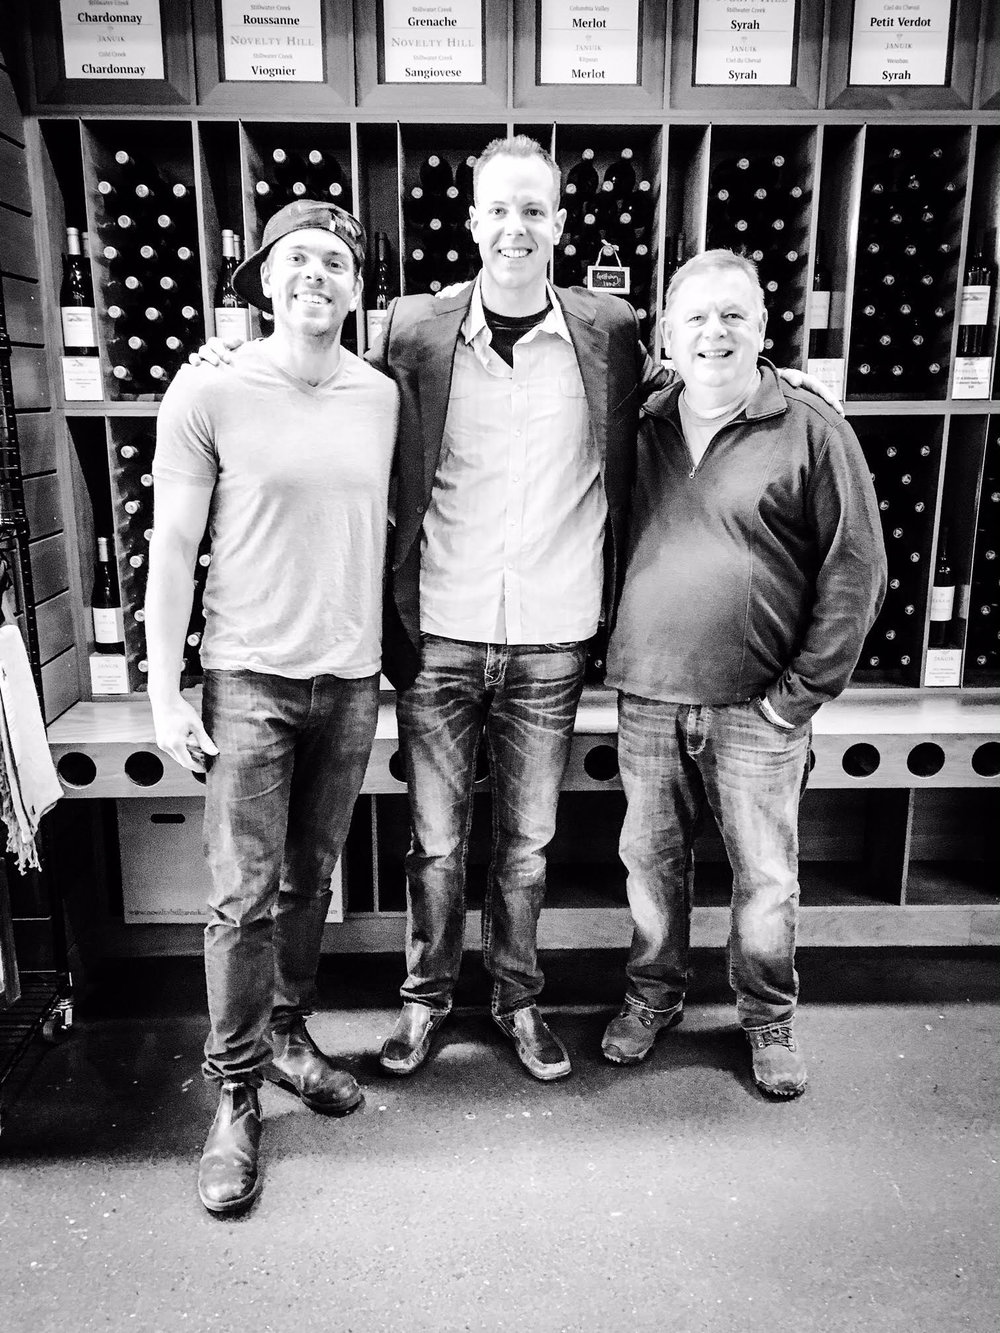 Here I am pictured with superstar winemakers Andrew Januik (L) and Mike Januik (R). Mike Januik is the former winemaker for Chateau St. Michelle and Col Solare.